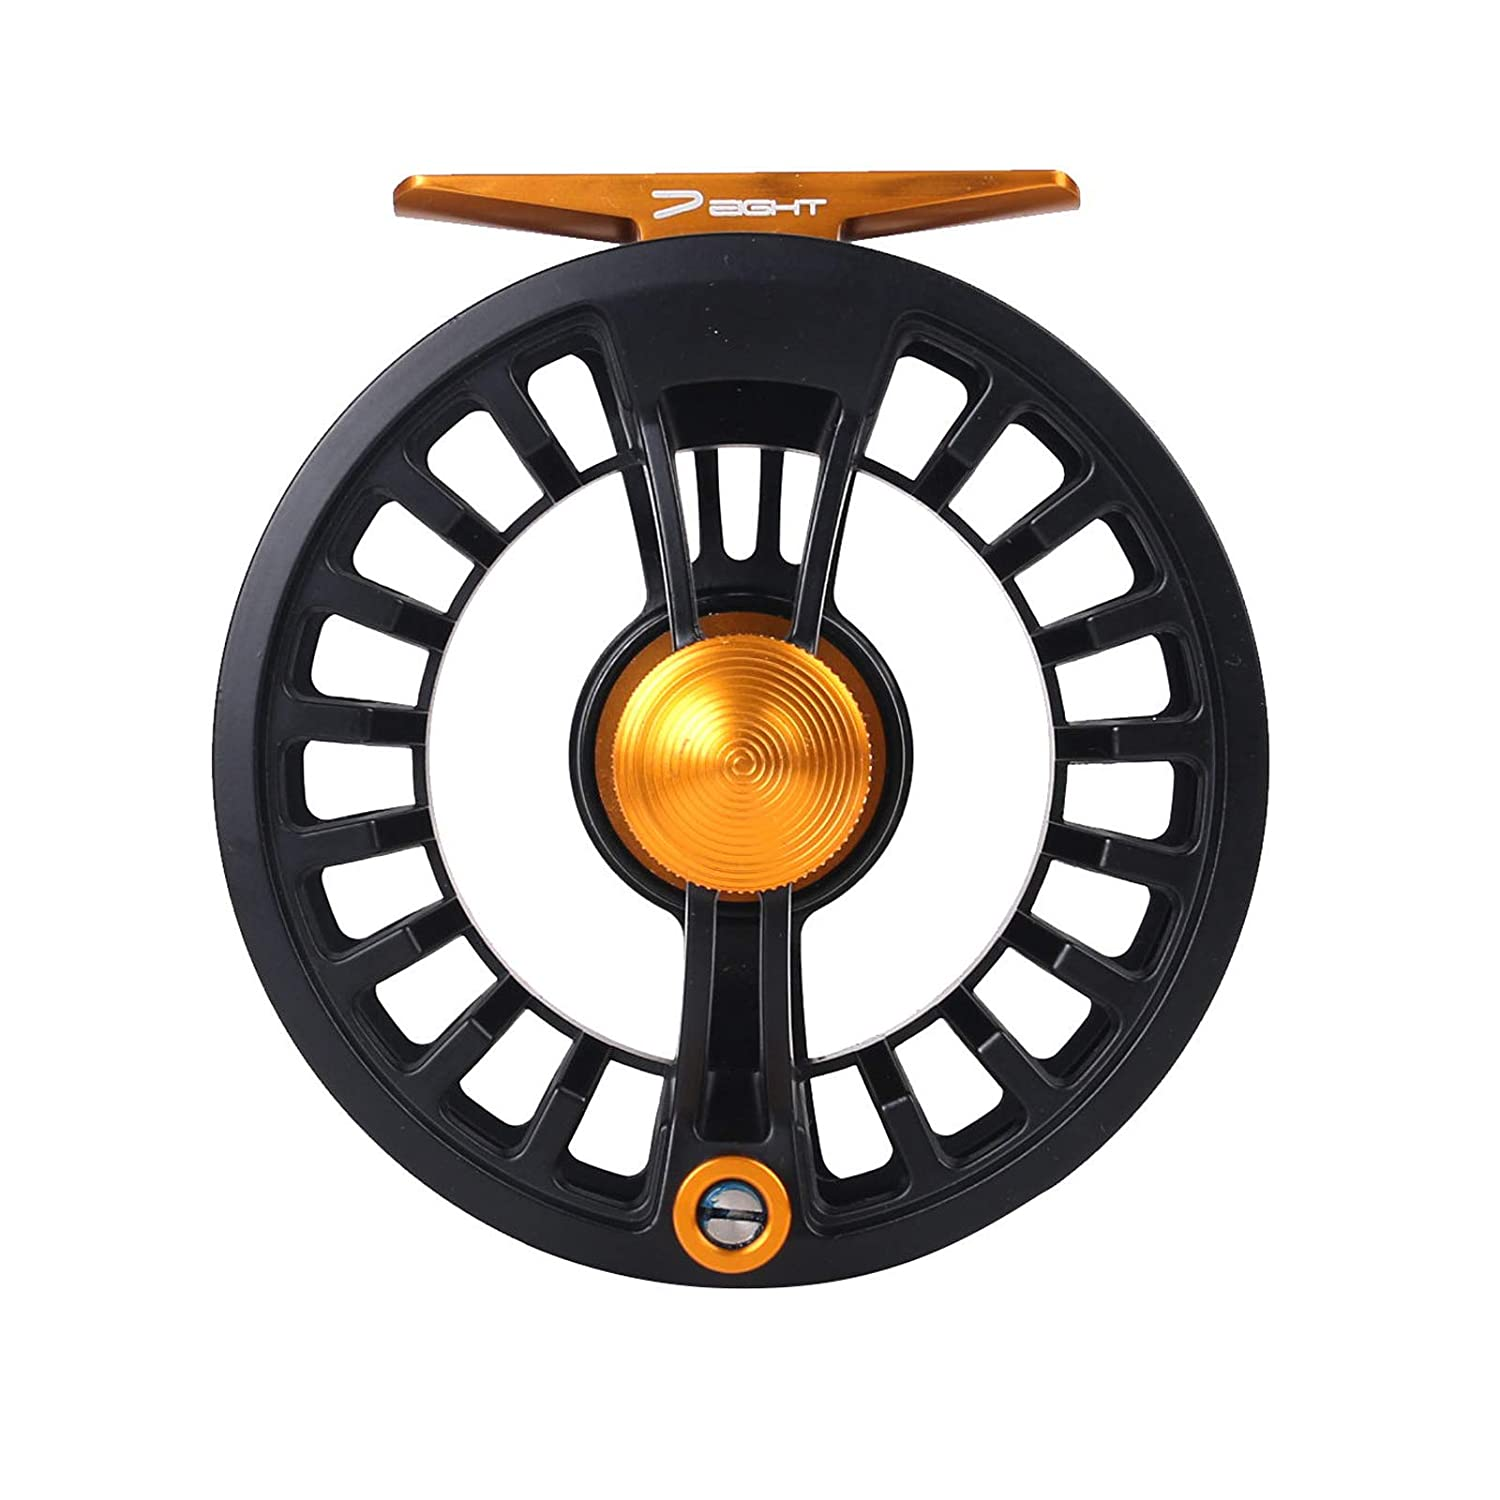 M MAXIMUMCATCH Maxcatch Tail Fly Fishing Reel Waterproof Light Weight Large Arbor Teflon Disc with CNC-machined Aluminum Alloy Body 5 6 7 8wt